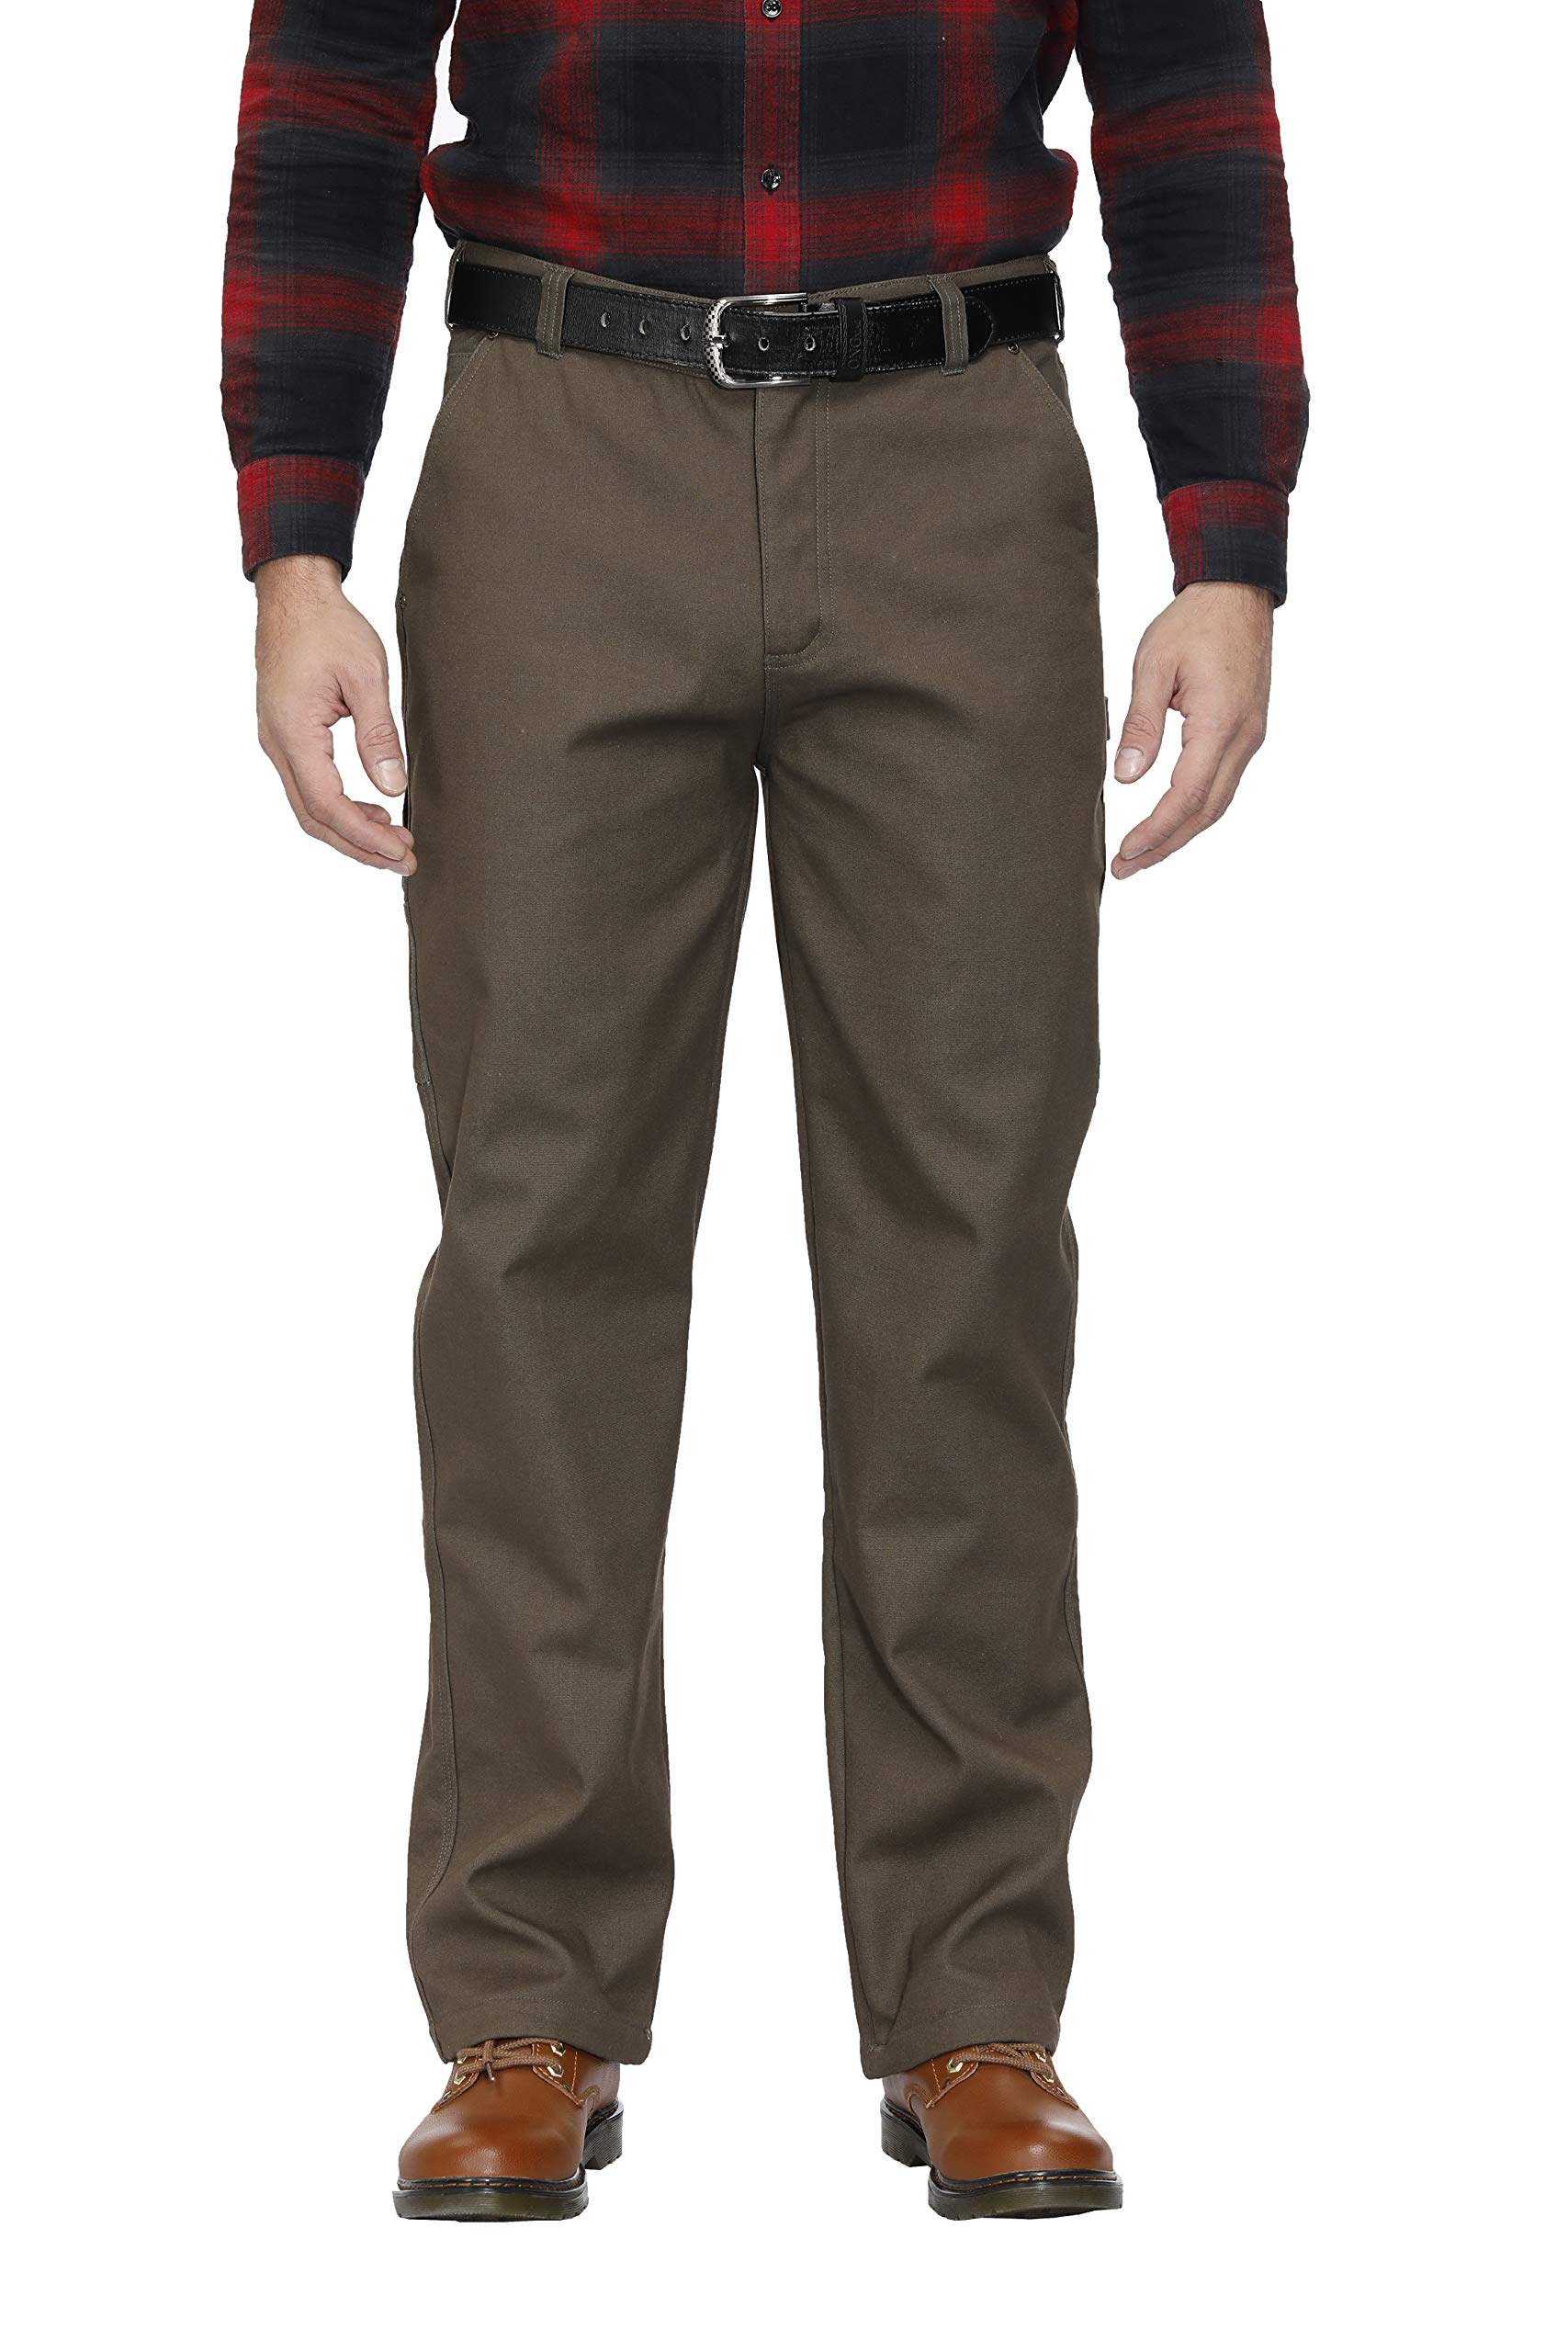 MOHEEN Men's Relaxed Fit Cotton Fleece Lined Work Cargo Pant with 8 Multi-Pocket